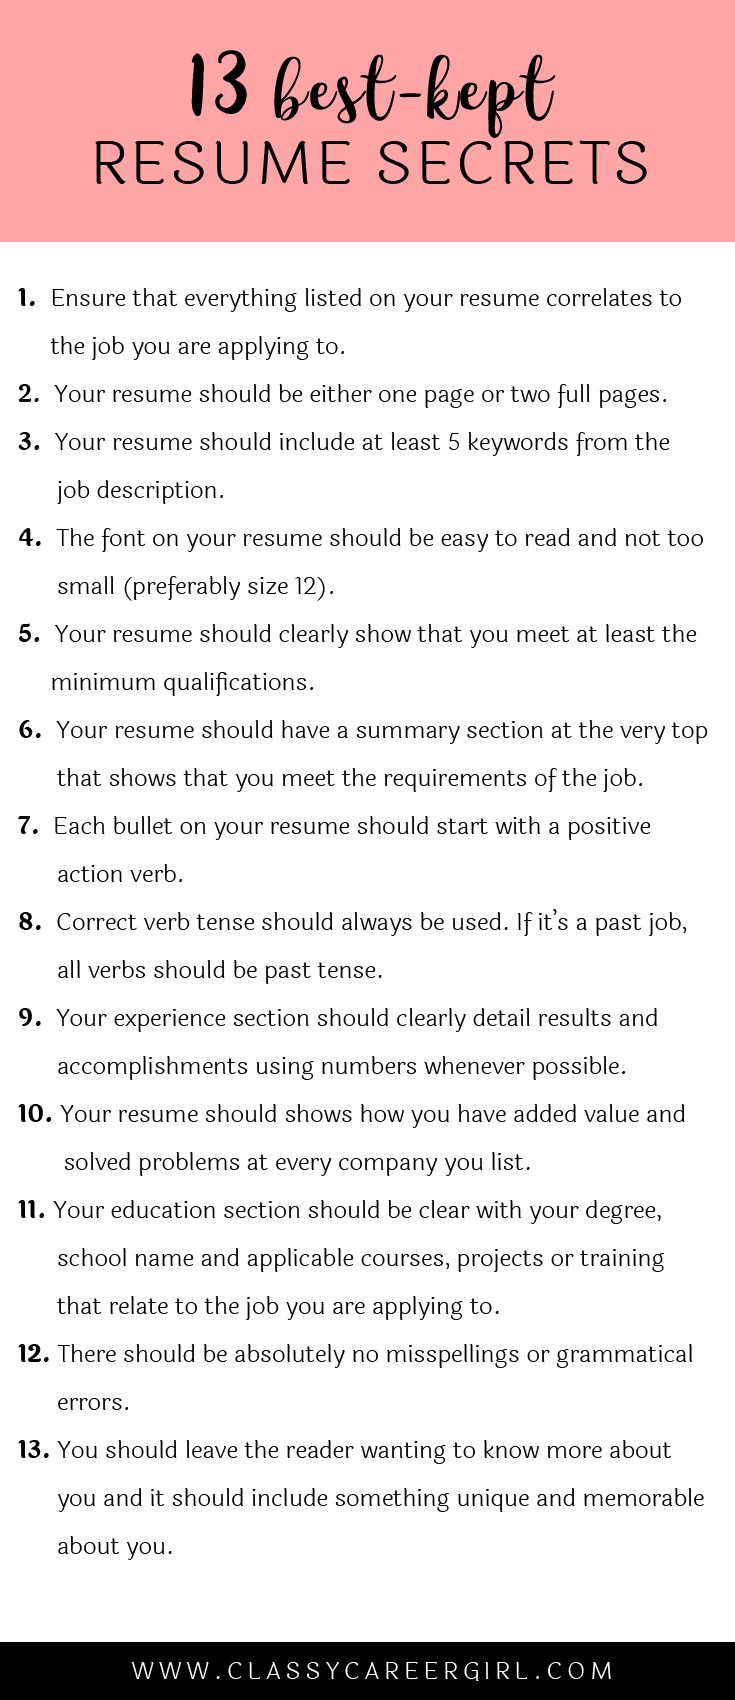 Opposenewapstandardsus  Fascinating  Ideas About Resume On Pinterest  Cv Format Resume Cv And  With Foxy Some Hiring Managers Will Toss Your Resume Out If You Dont Know These  With Amusing What Is Objective In Resume Also Sample Reference Page For Resume In Addition Help With Resume Writing And Wordpad Resume Template As Well As Free Blank Resume Templates For Microsoft Word Additionally Sushi Chef Resume From Pinterestcom With Opposenewapstandardsus  Foxy  Ideas About Resume On Pinterest  Cv Format Resume Cv And  With Amusing Some Hiring Managers Will Toss Your Resume Out If You Dont Know These  And Fascinating What Is Objective In Resume Also Sample Reference Page For Resume In Addition Help With Resume Writing From Pinterestcom